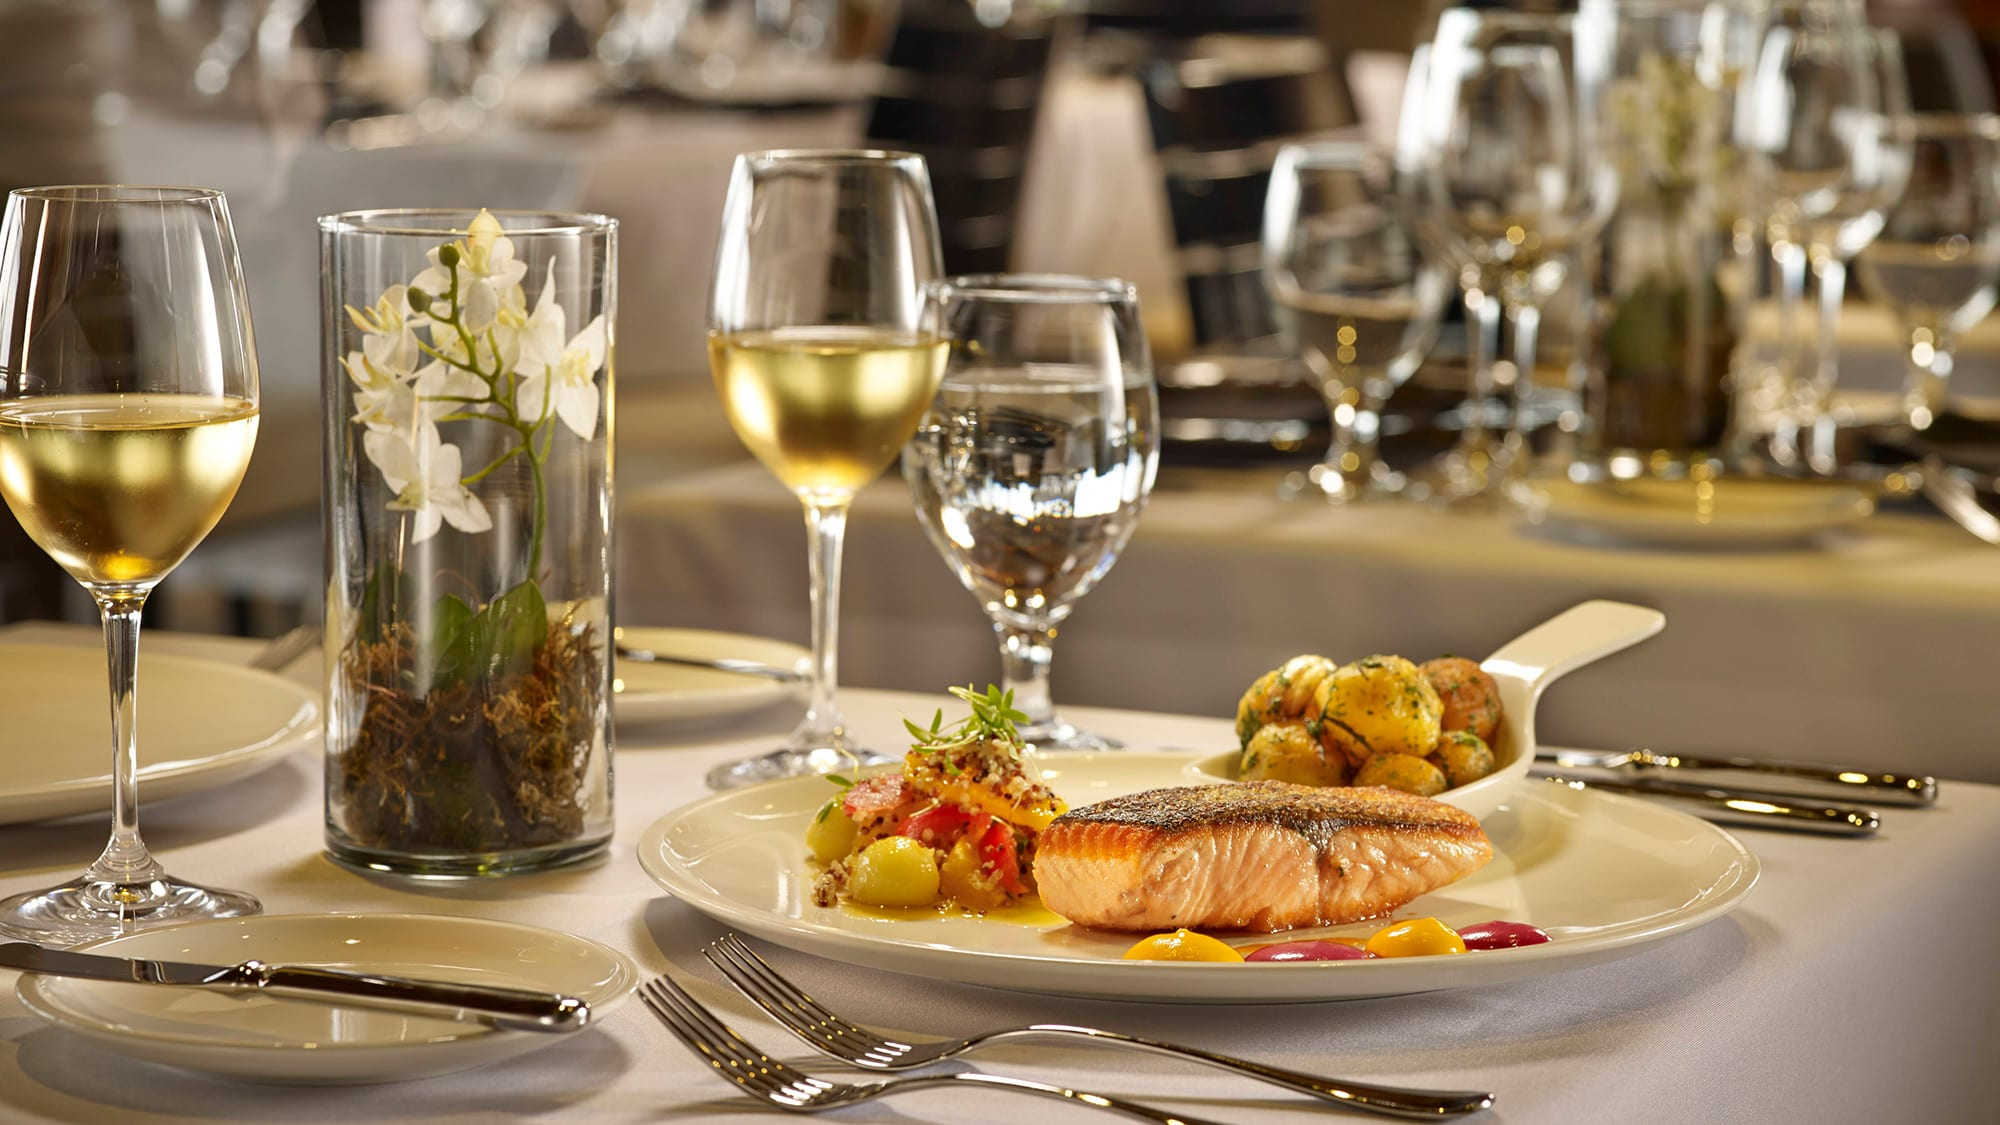 salmon dish set on a table with white wine